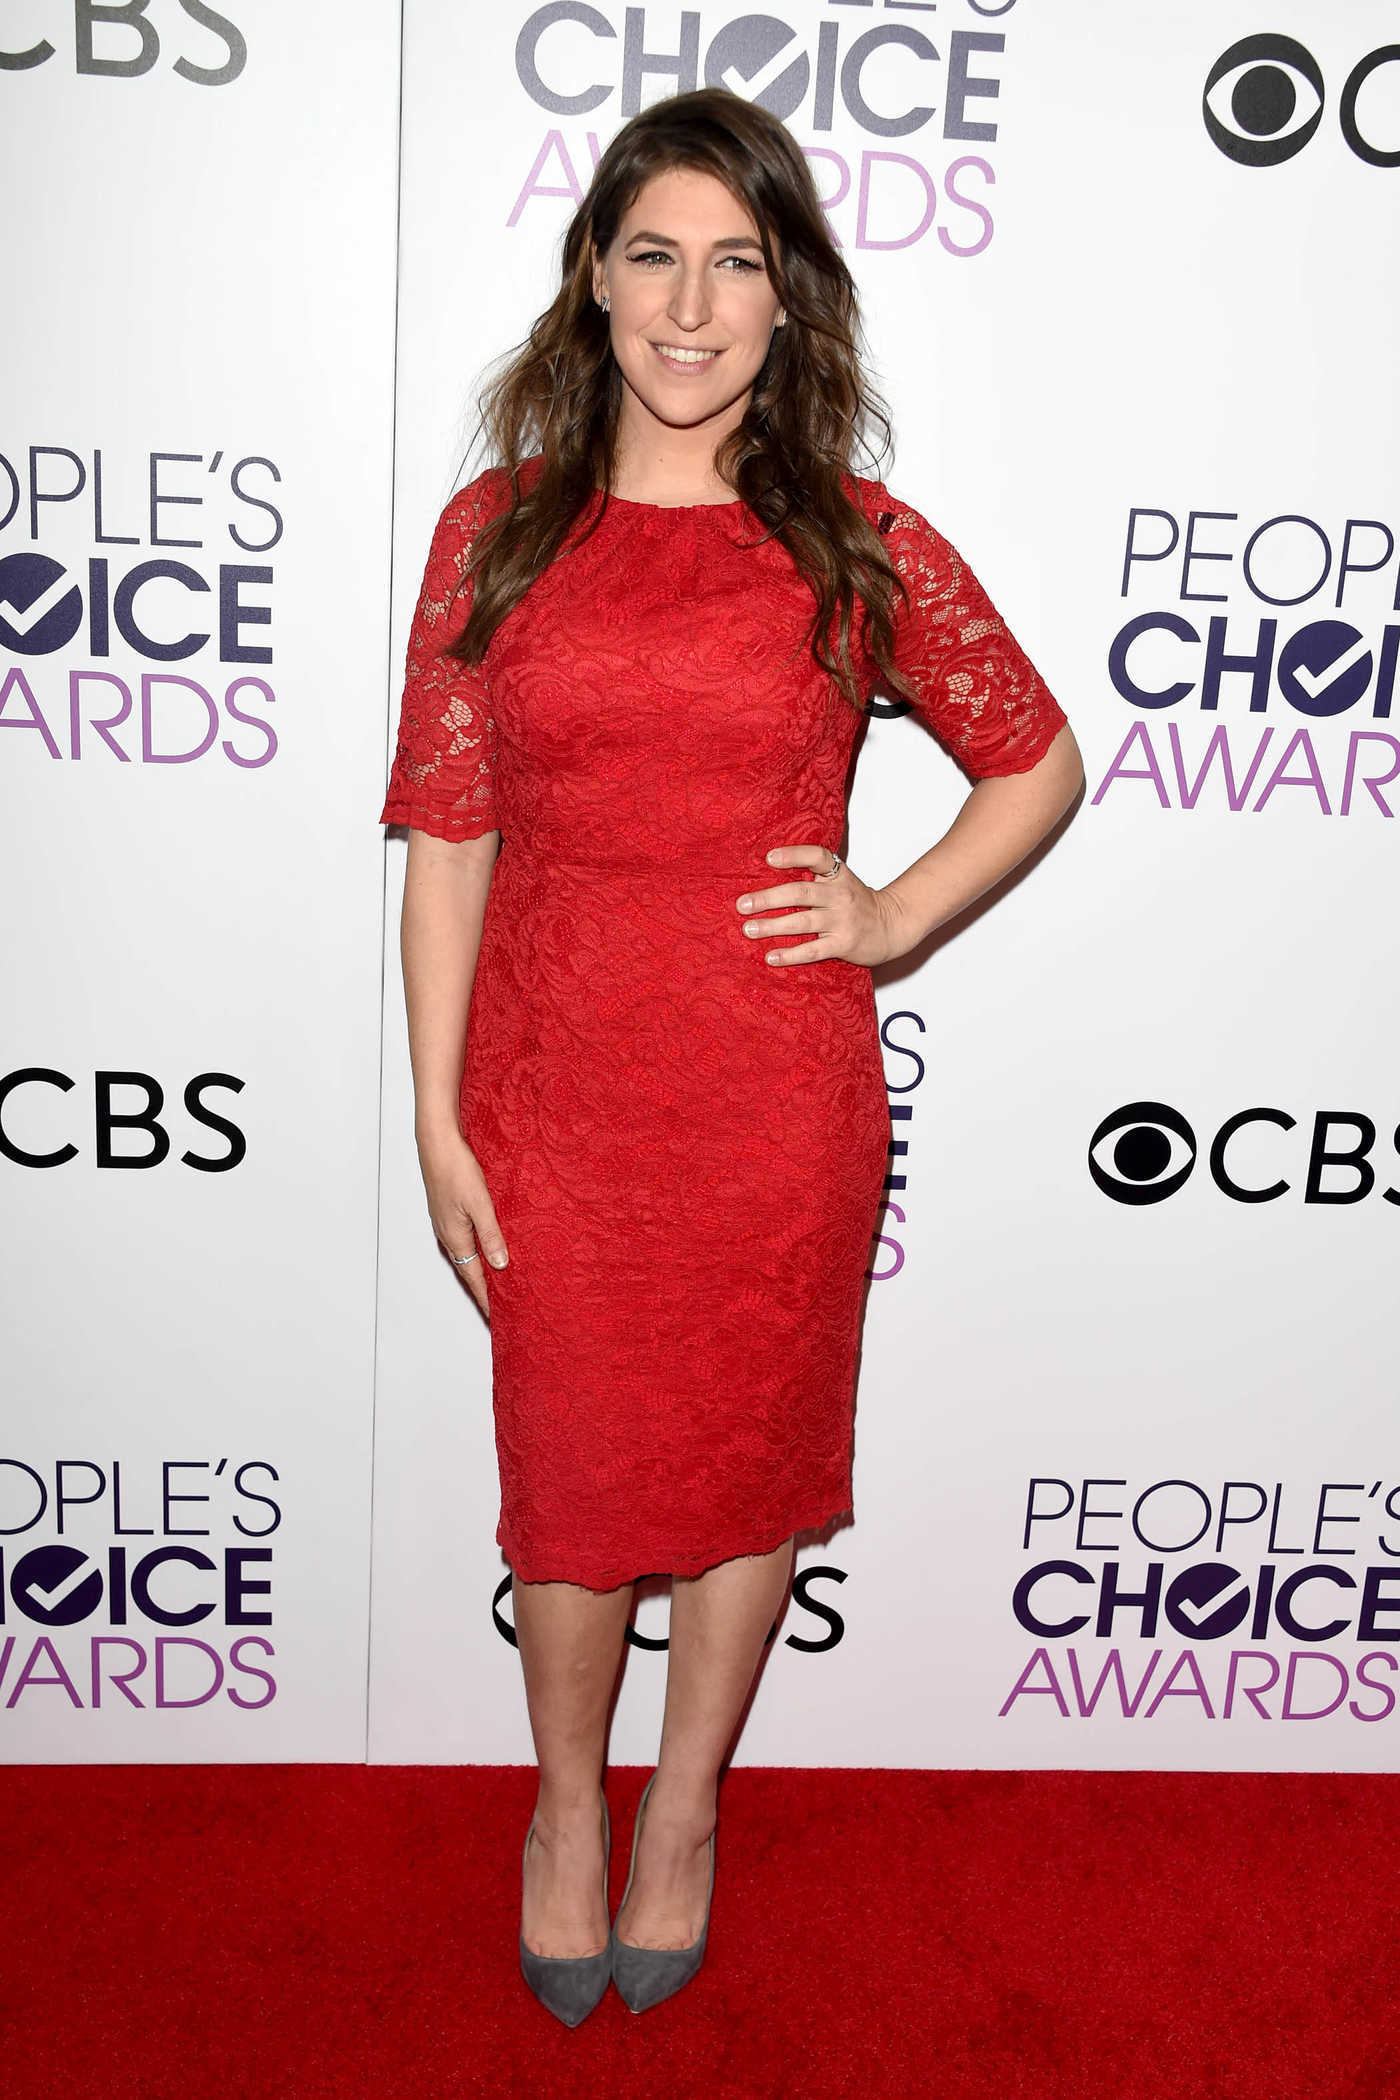 Mayim Bialik at the 43rd Annual People's Choice Awards in Los Angeles 01/18/2017